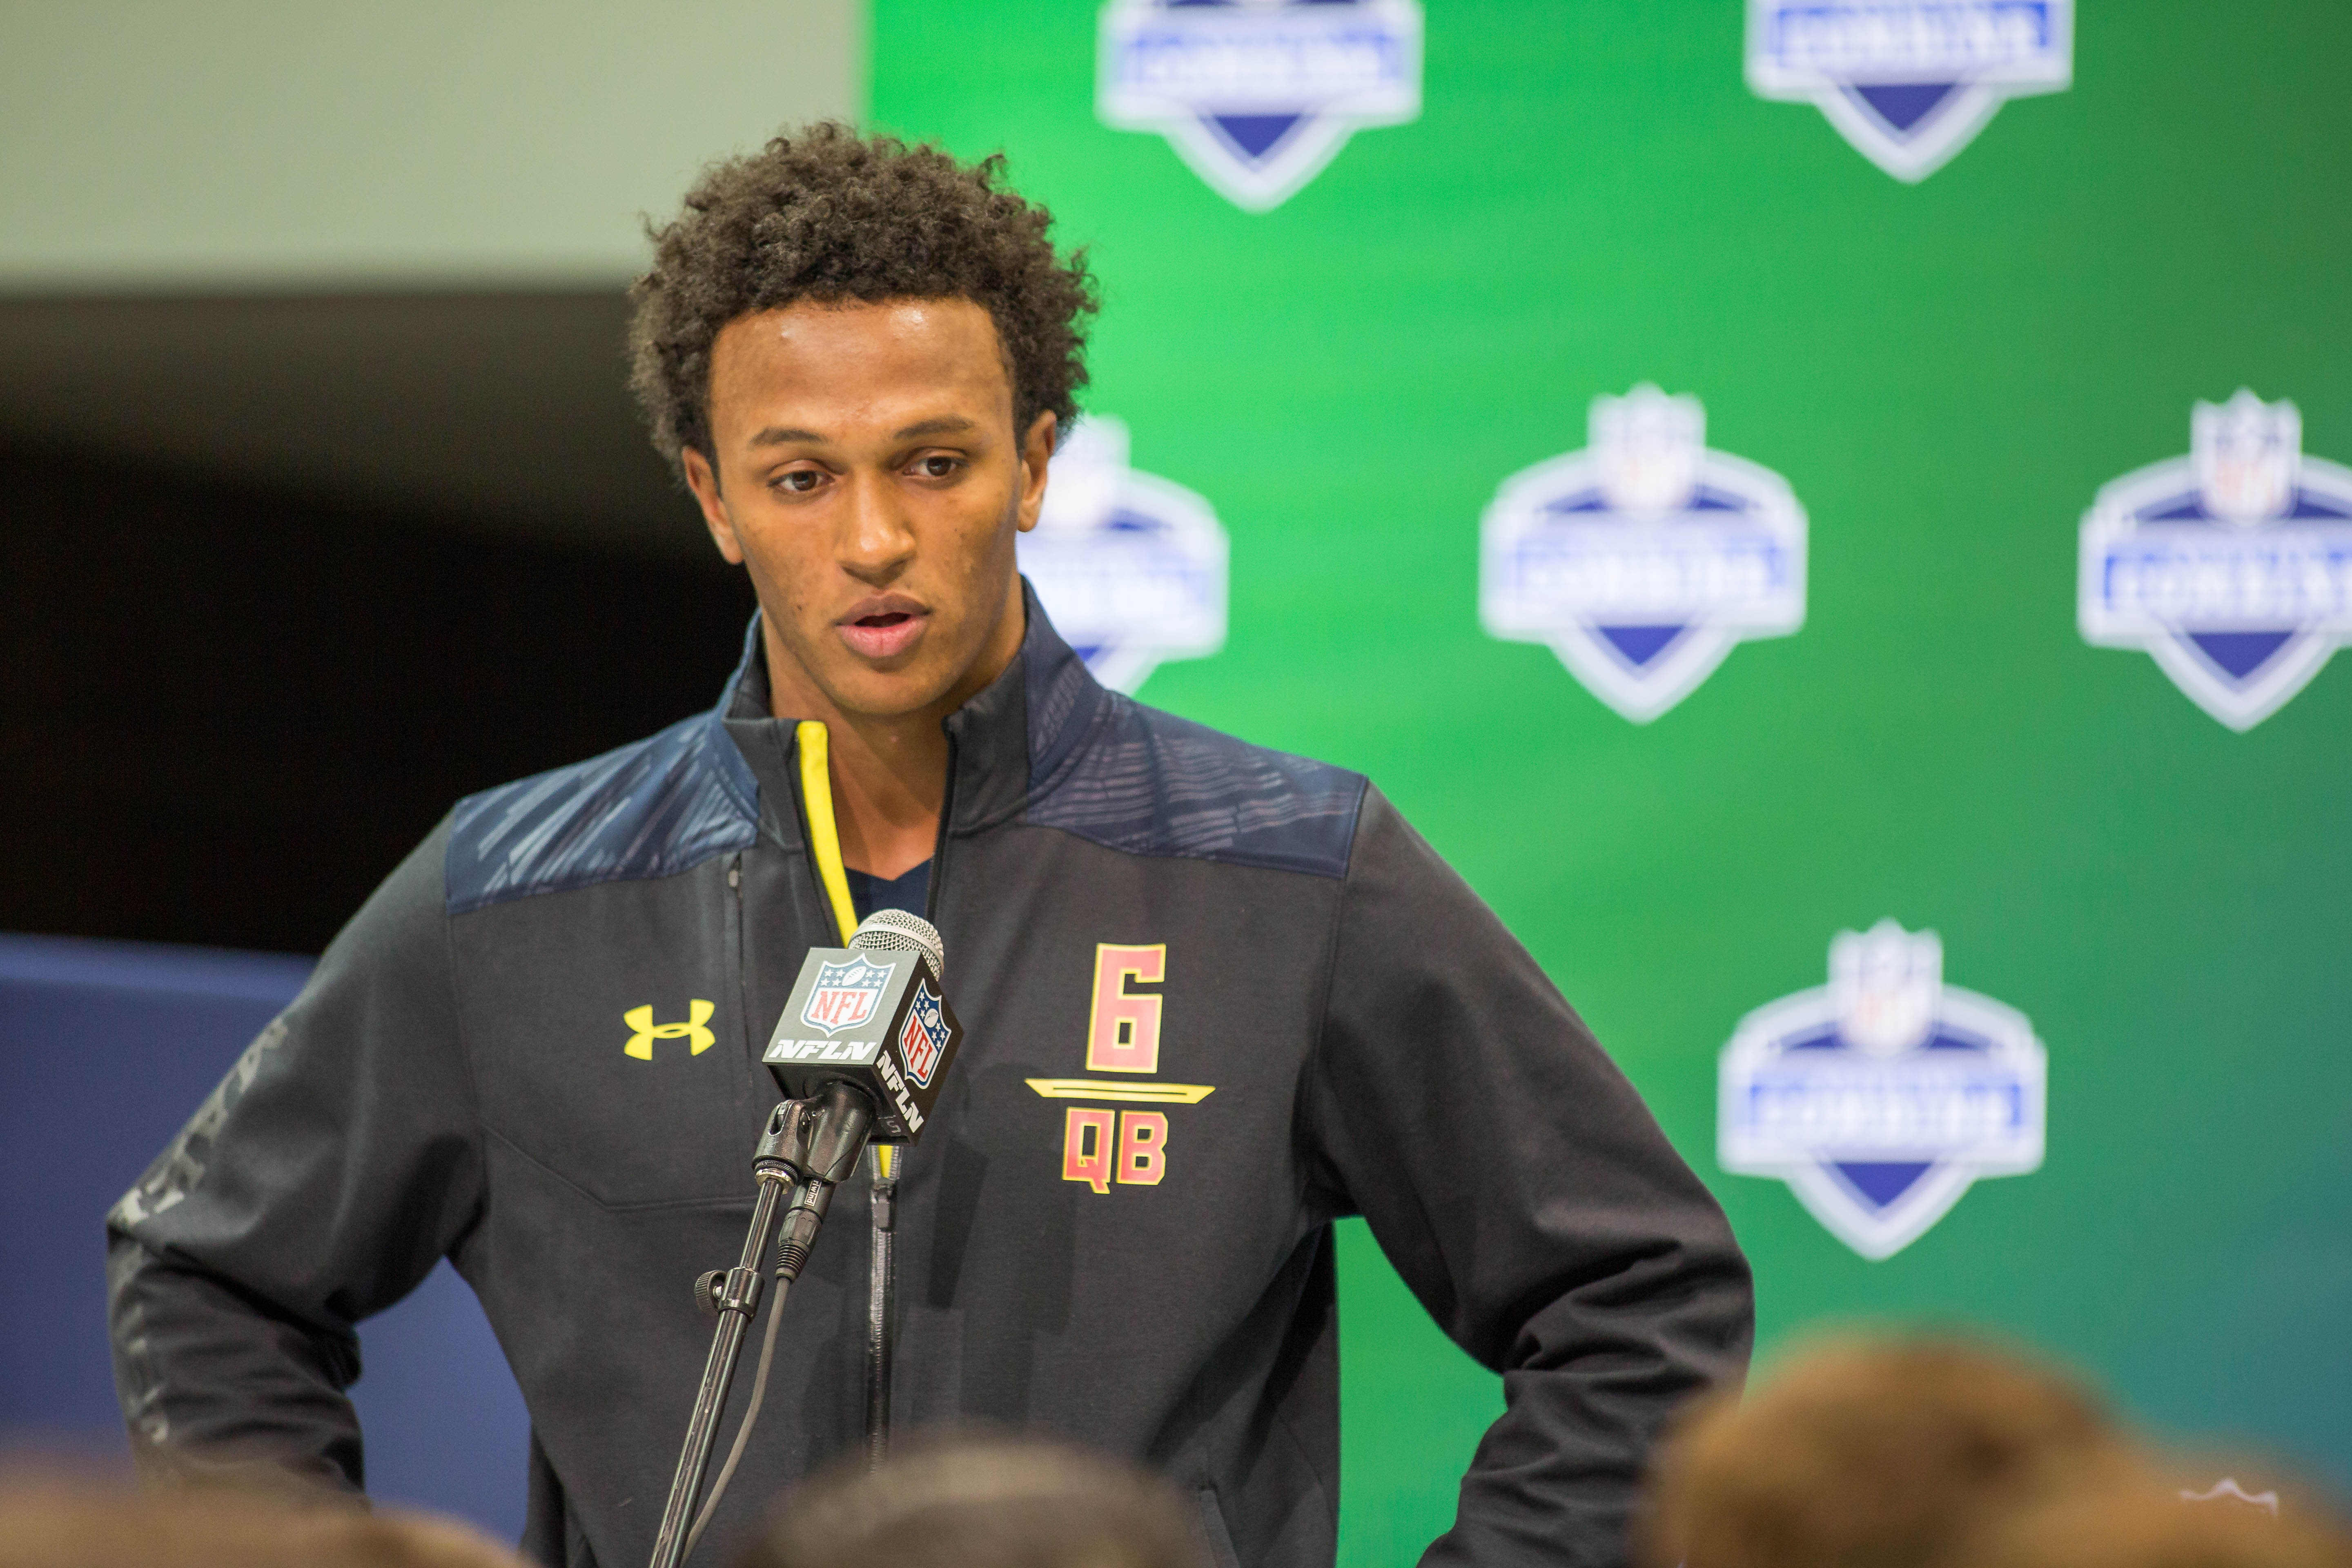 QB landed: Browns draft Notre Dame's Kizer in 2nd round